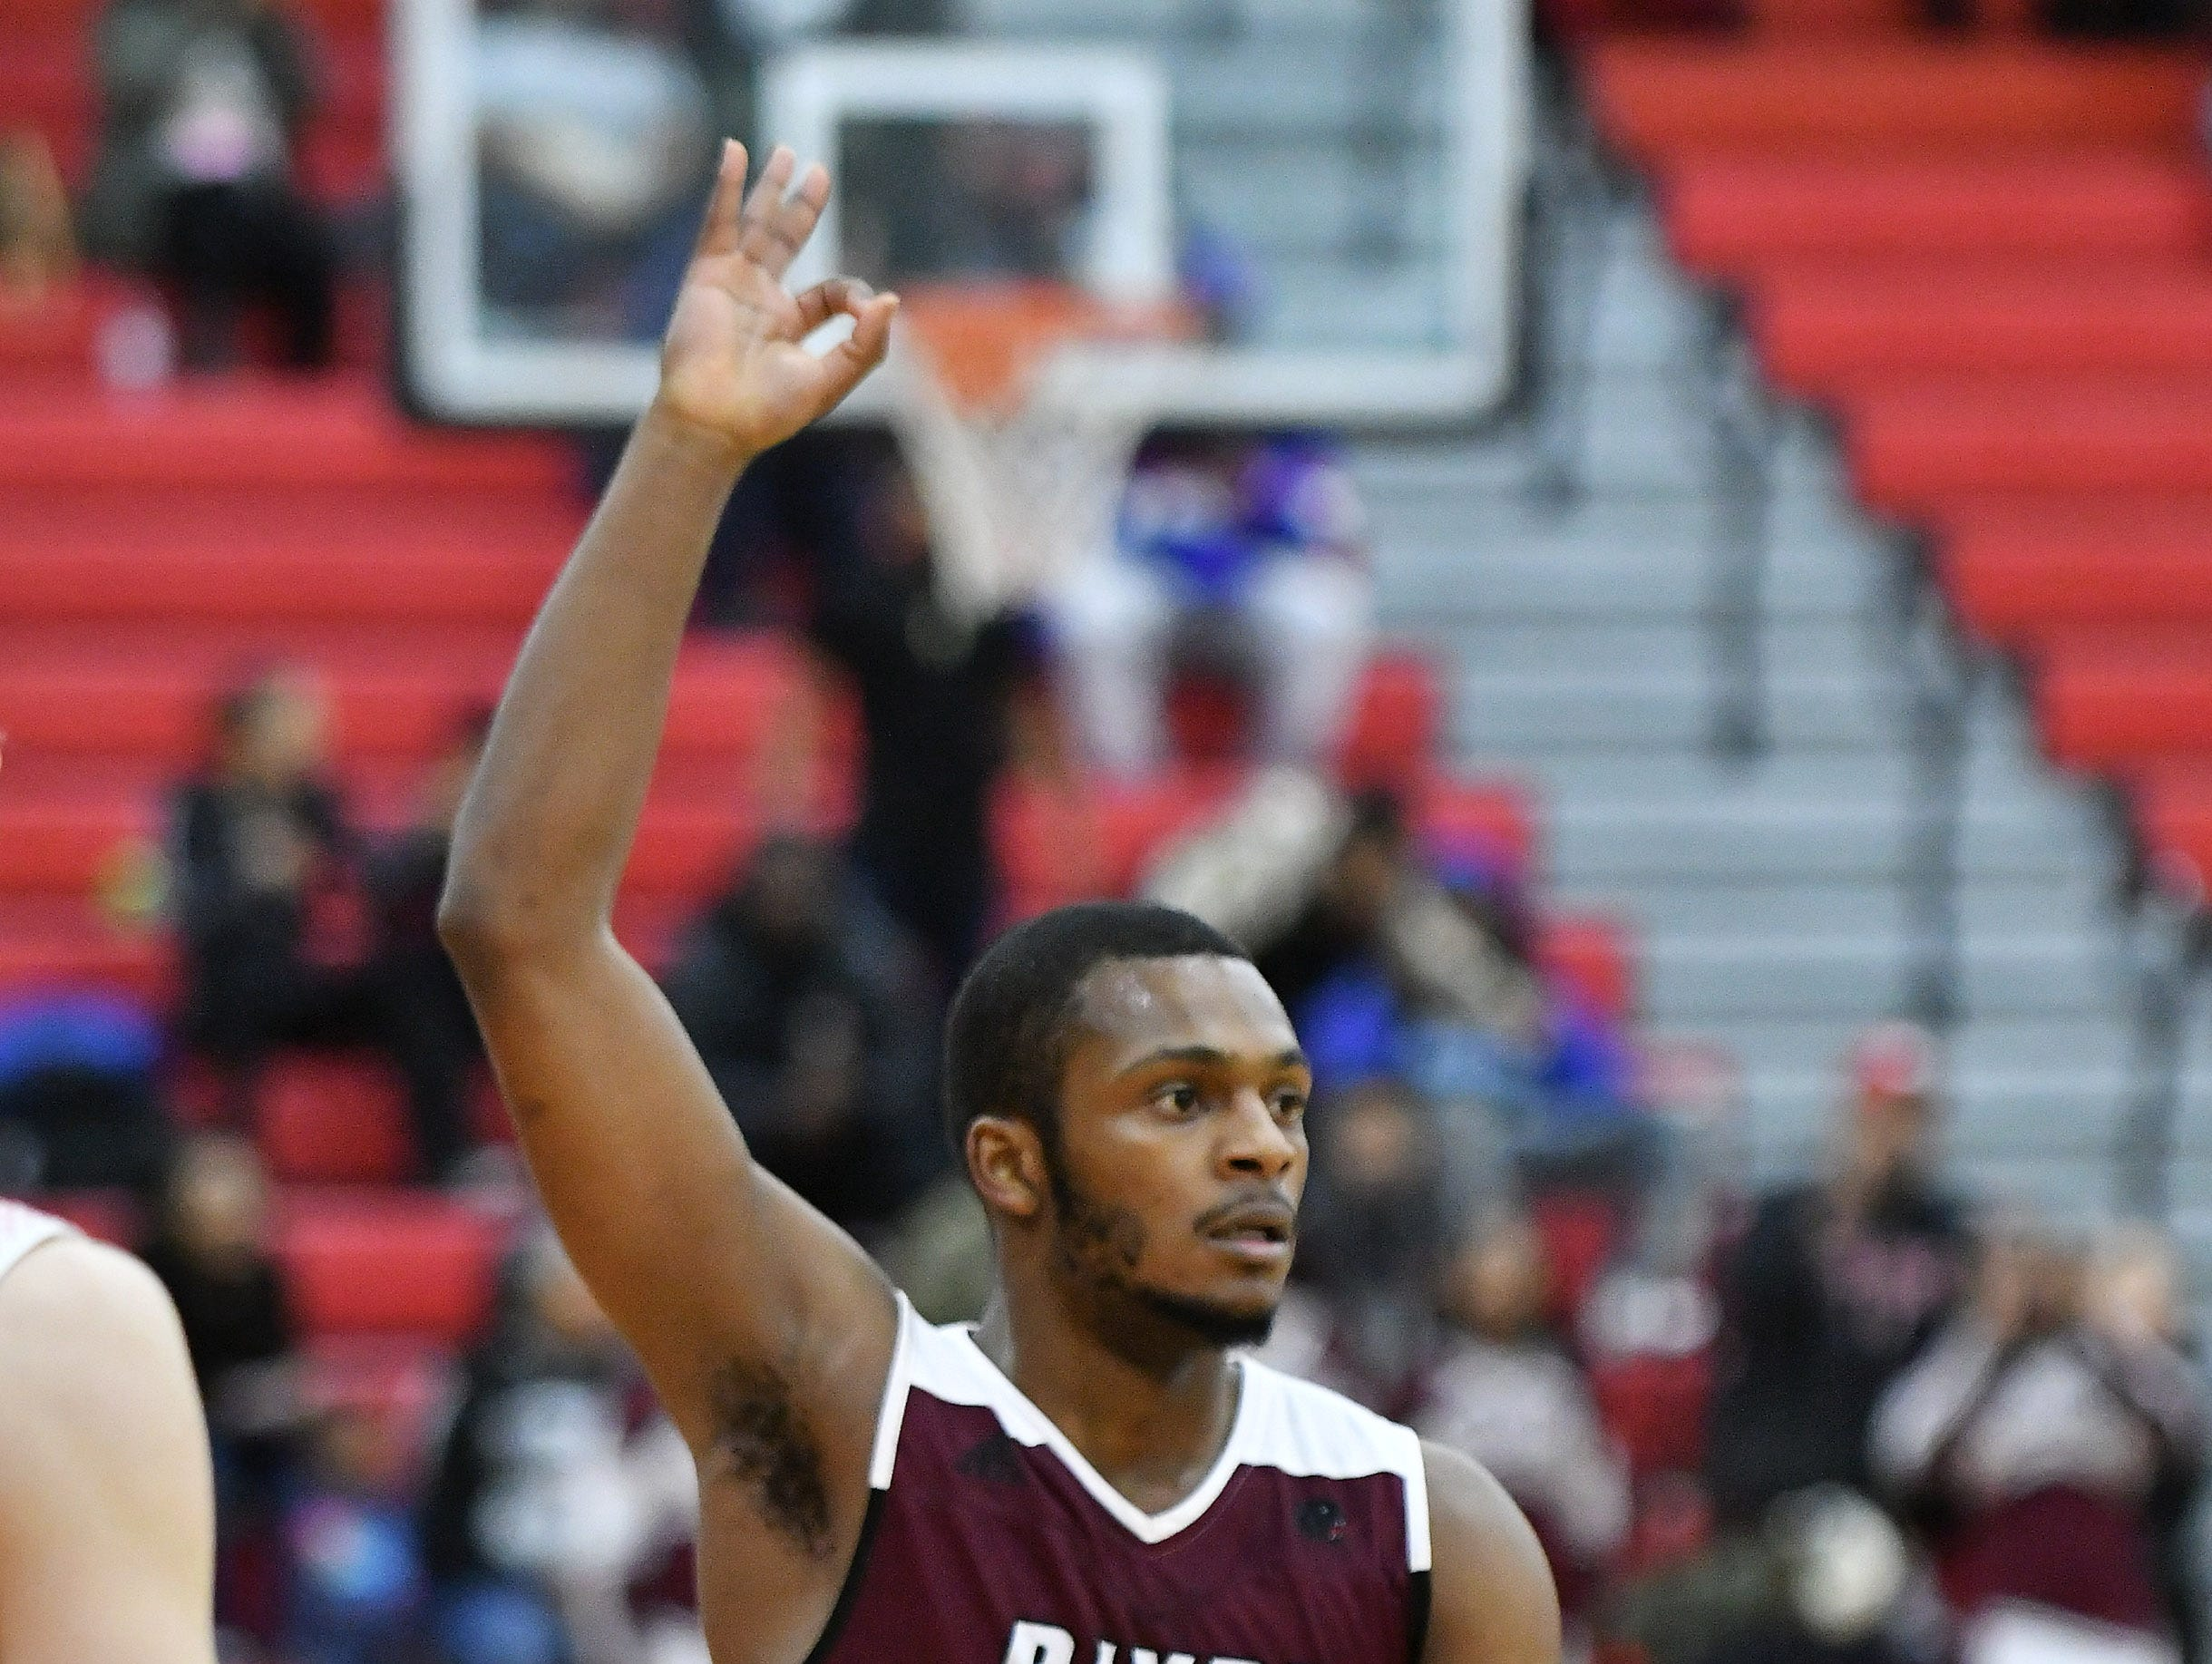 River Rouge's Nigel Colvin signals a made three-point shot in the first half.